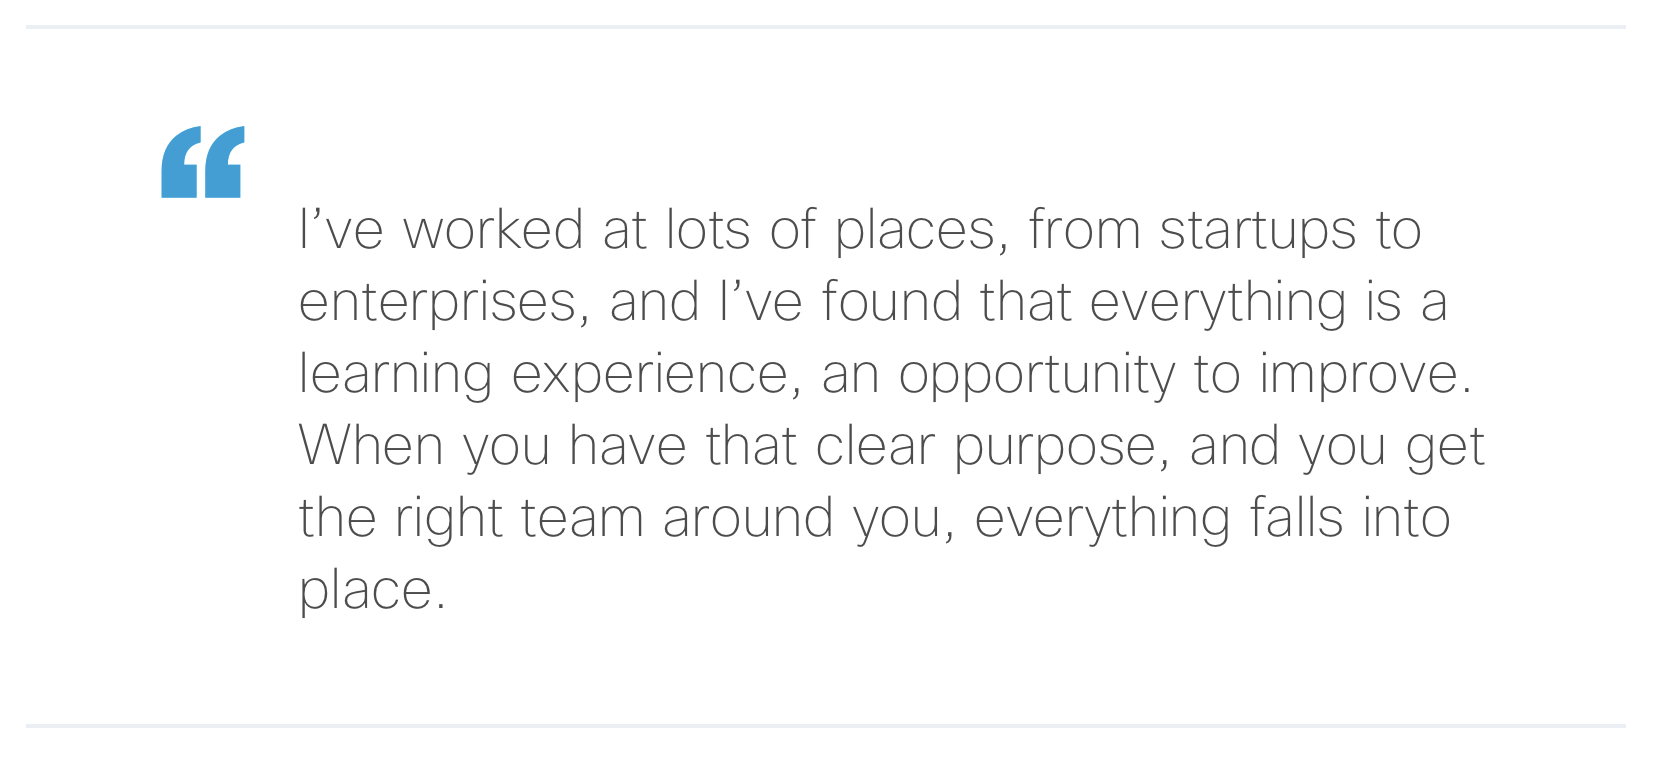 """""""I've worked at lots of places, from startups to enterprises, and I've found thateverything is a learning experience, an opportunity to improve. When you have that clear purpose, and you get the right team around you, everything falls into place."""""""